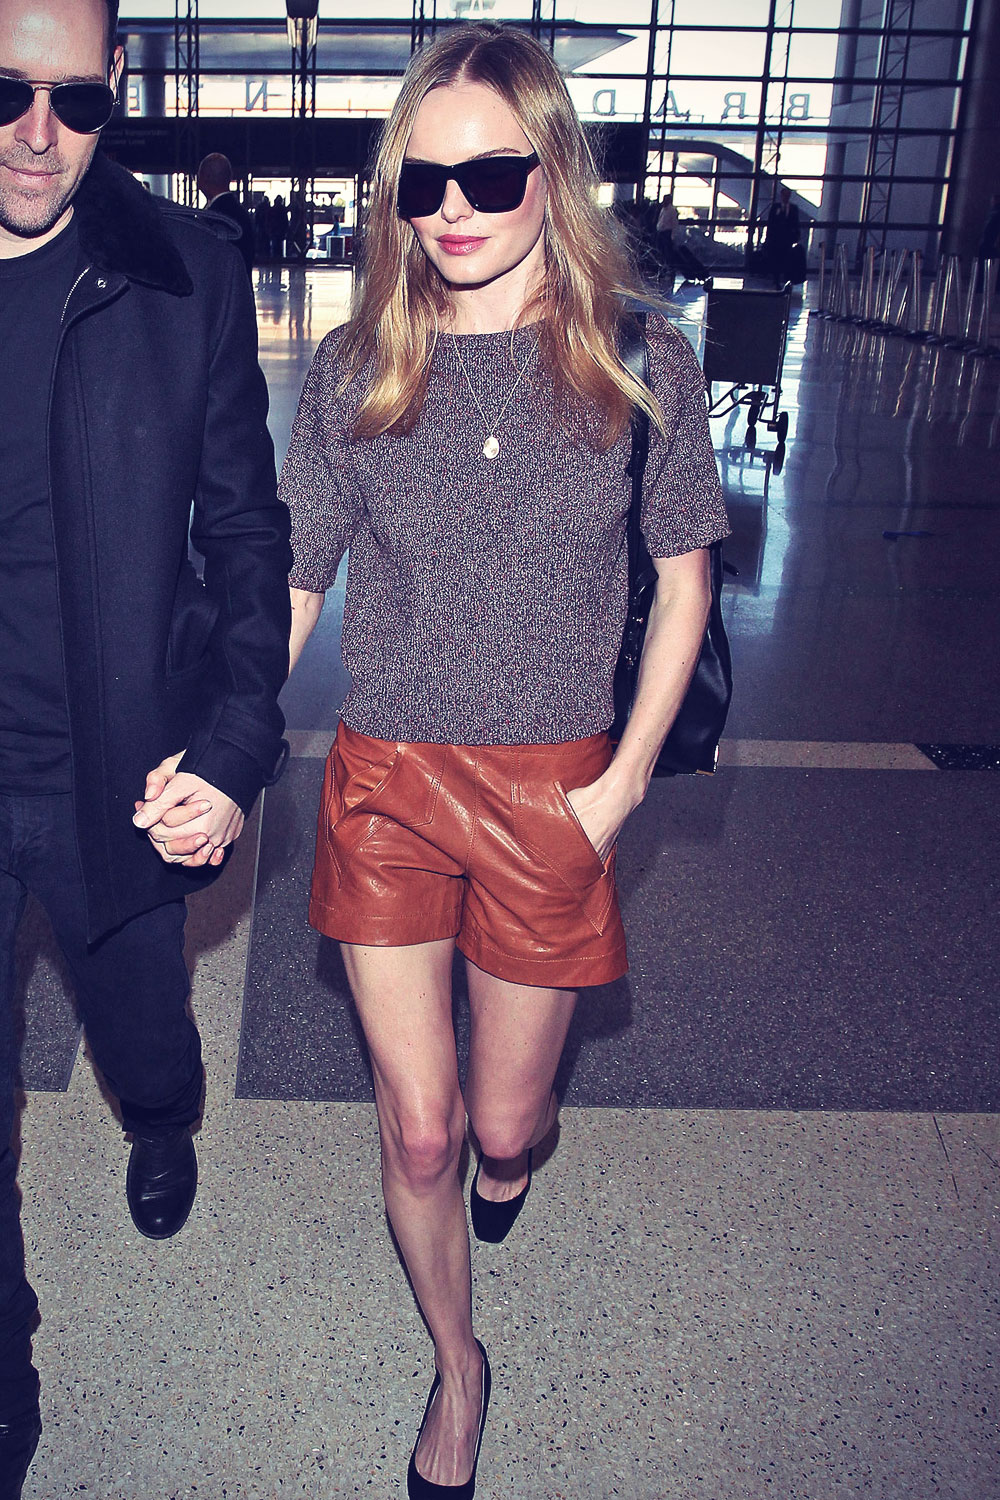 Kate Bosworth departing on a flight at LAX